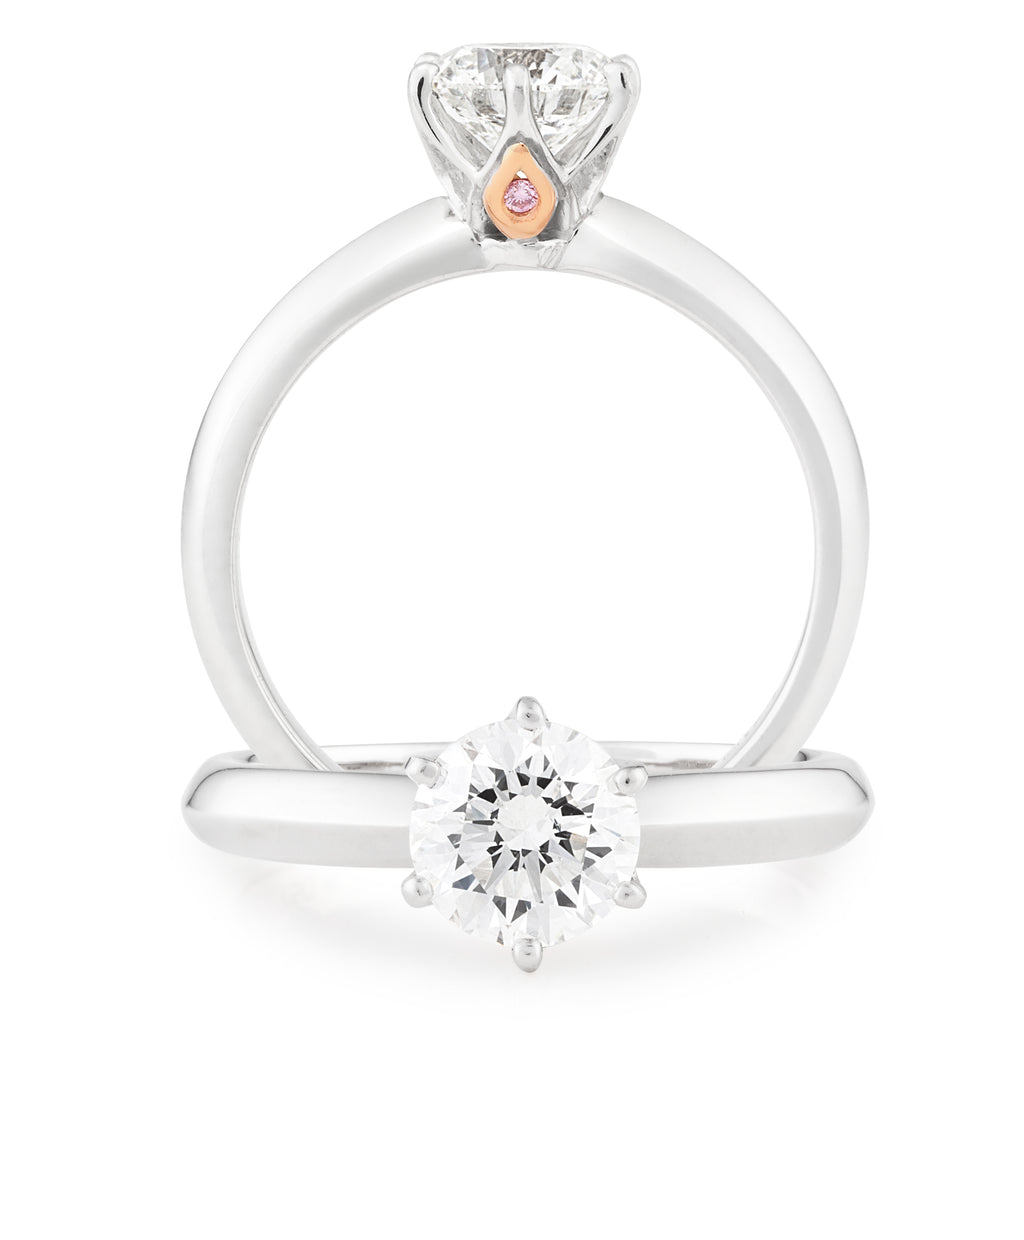 18ct White Gold Diamond Claw Set Engagement Ring, Pink Caviar